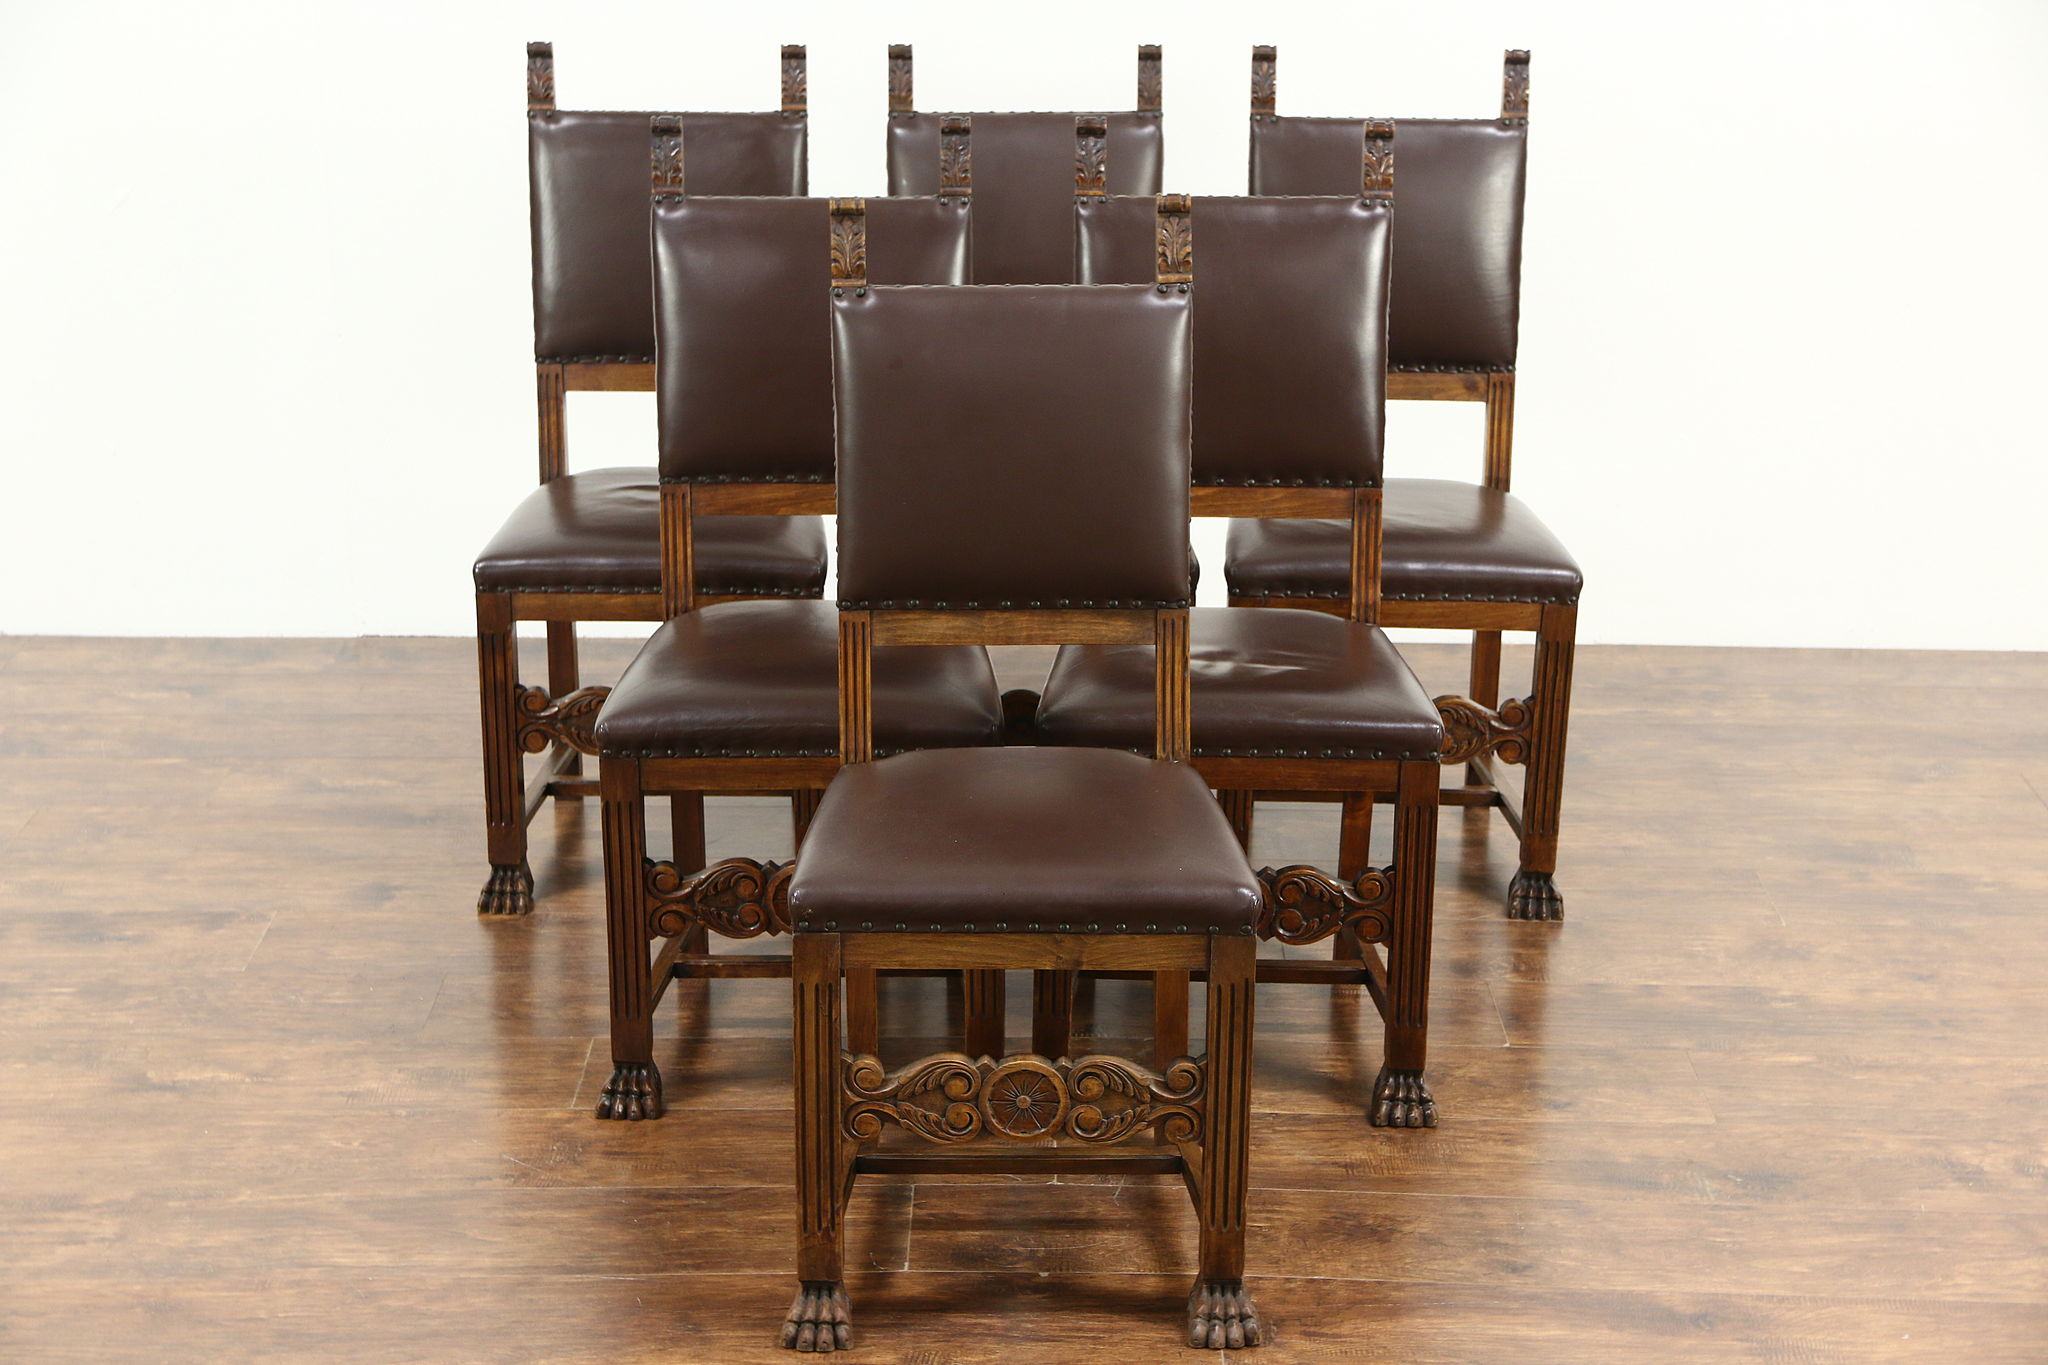 Italian Renaissance 1900 Antique Set Of 6 Dining Chairs Leather Upholstery Photo